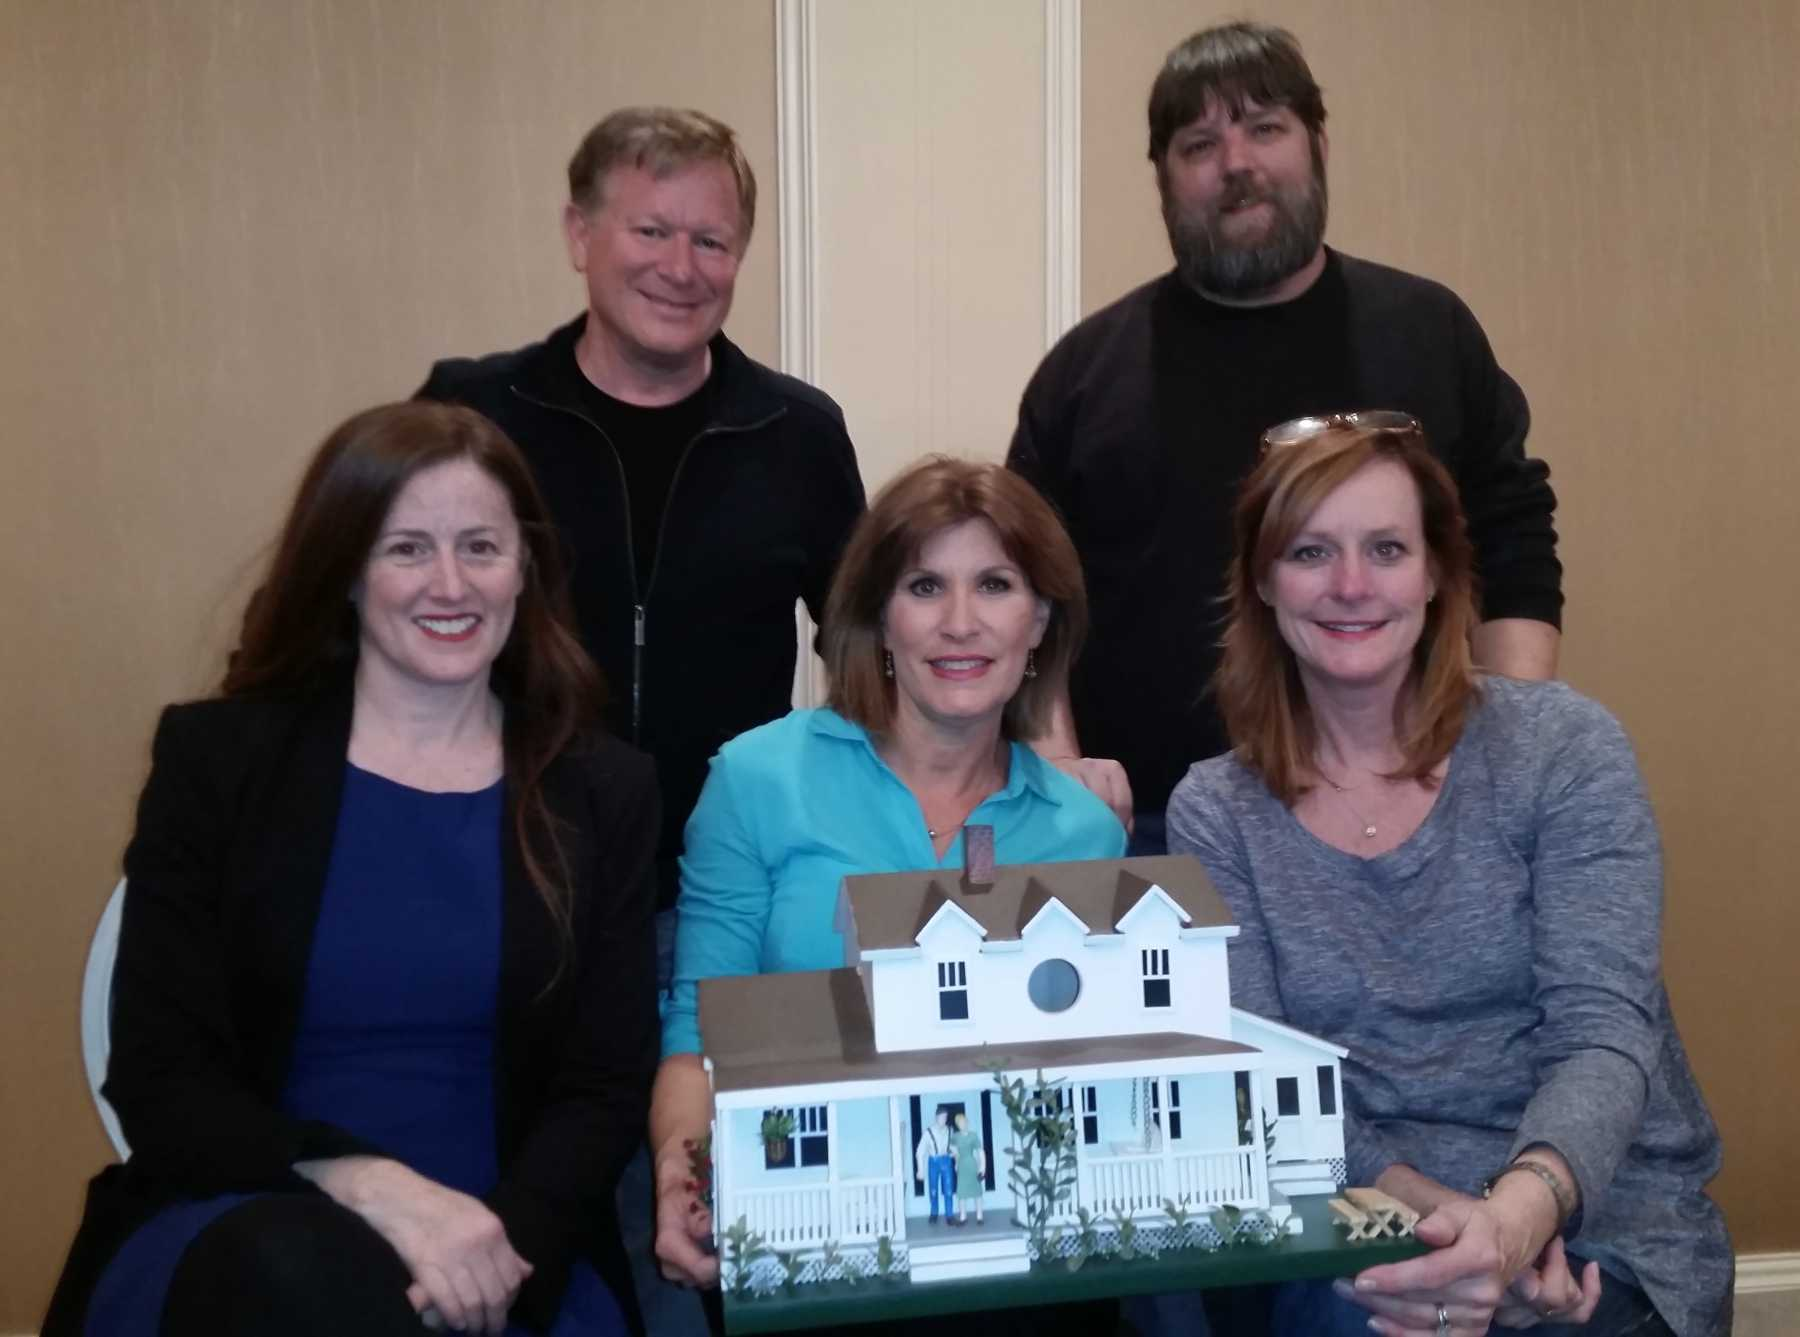 The Waltons Cast Reunites 35 Years Later | The Waltons